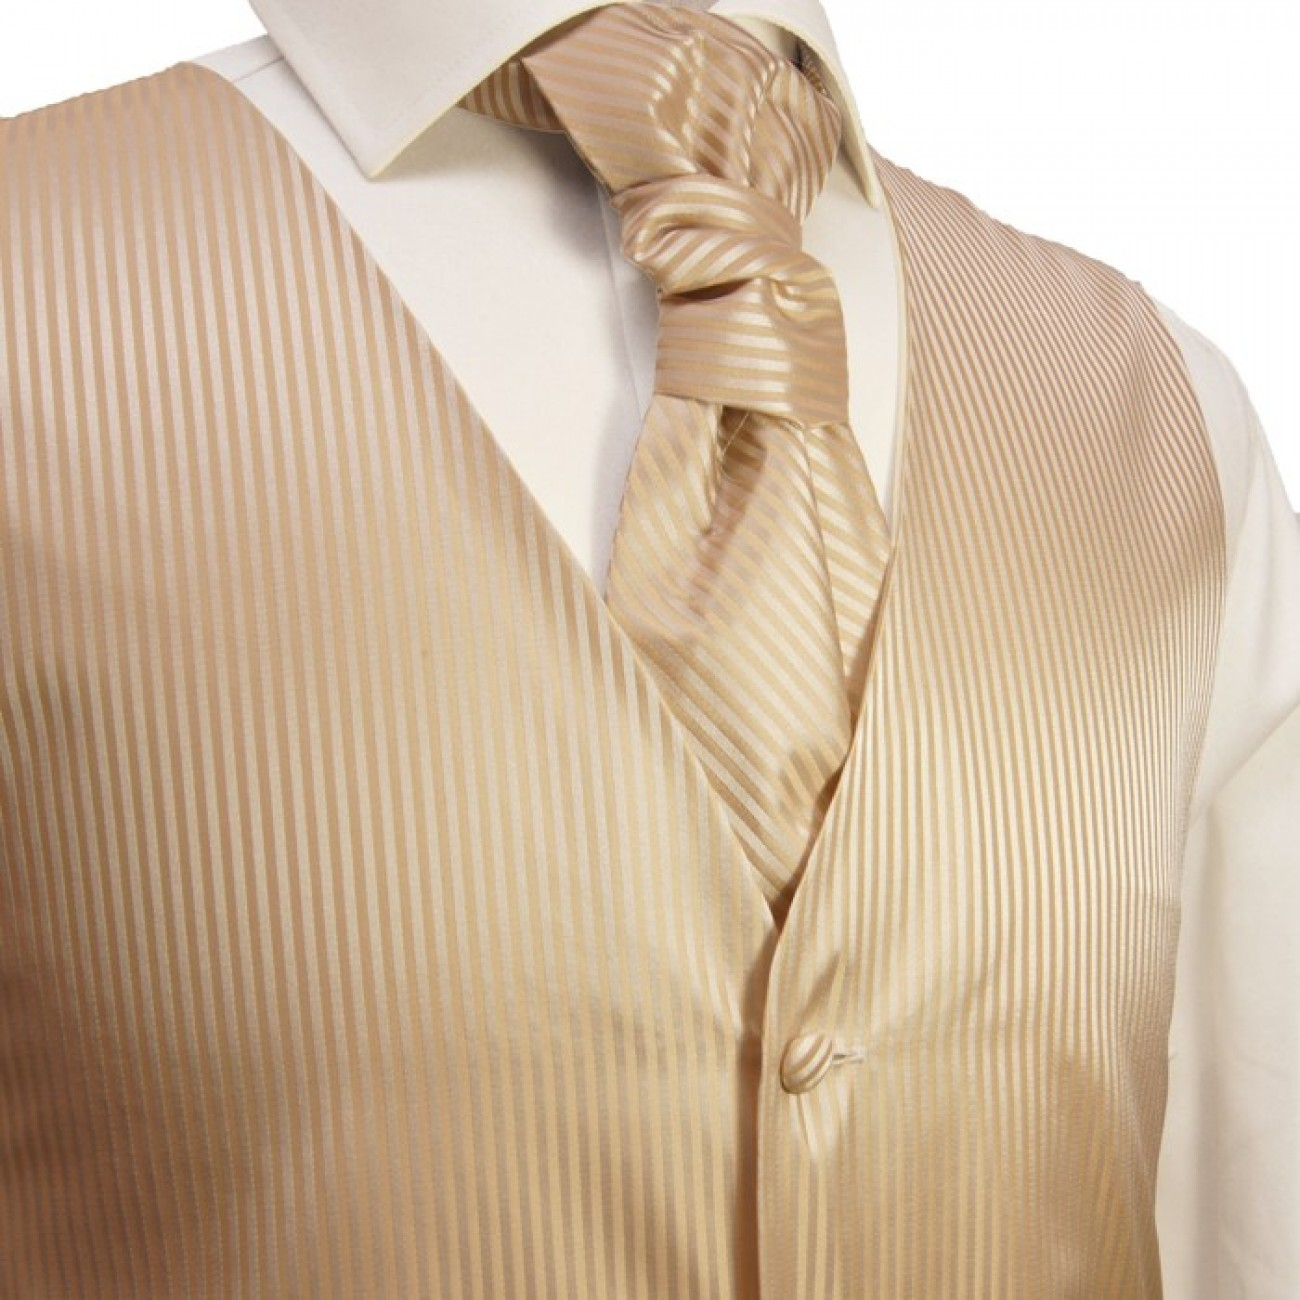 Cappuccino waistcoat for wedding with necktie ascot tie pocket square and cufflinks v28